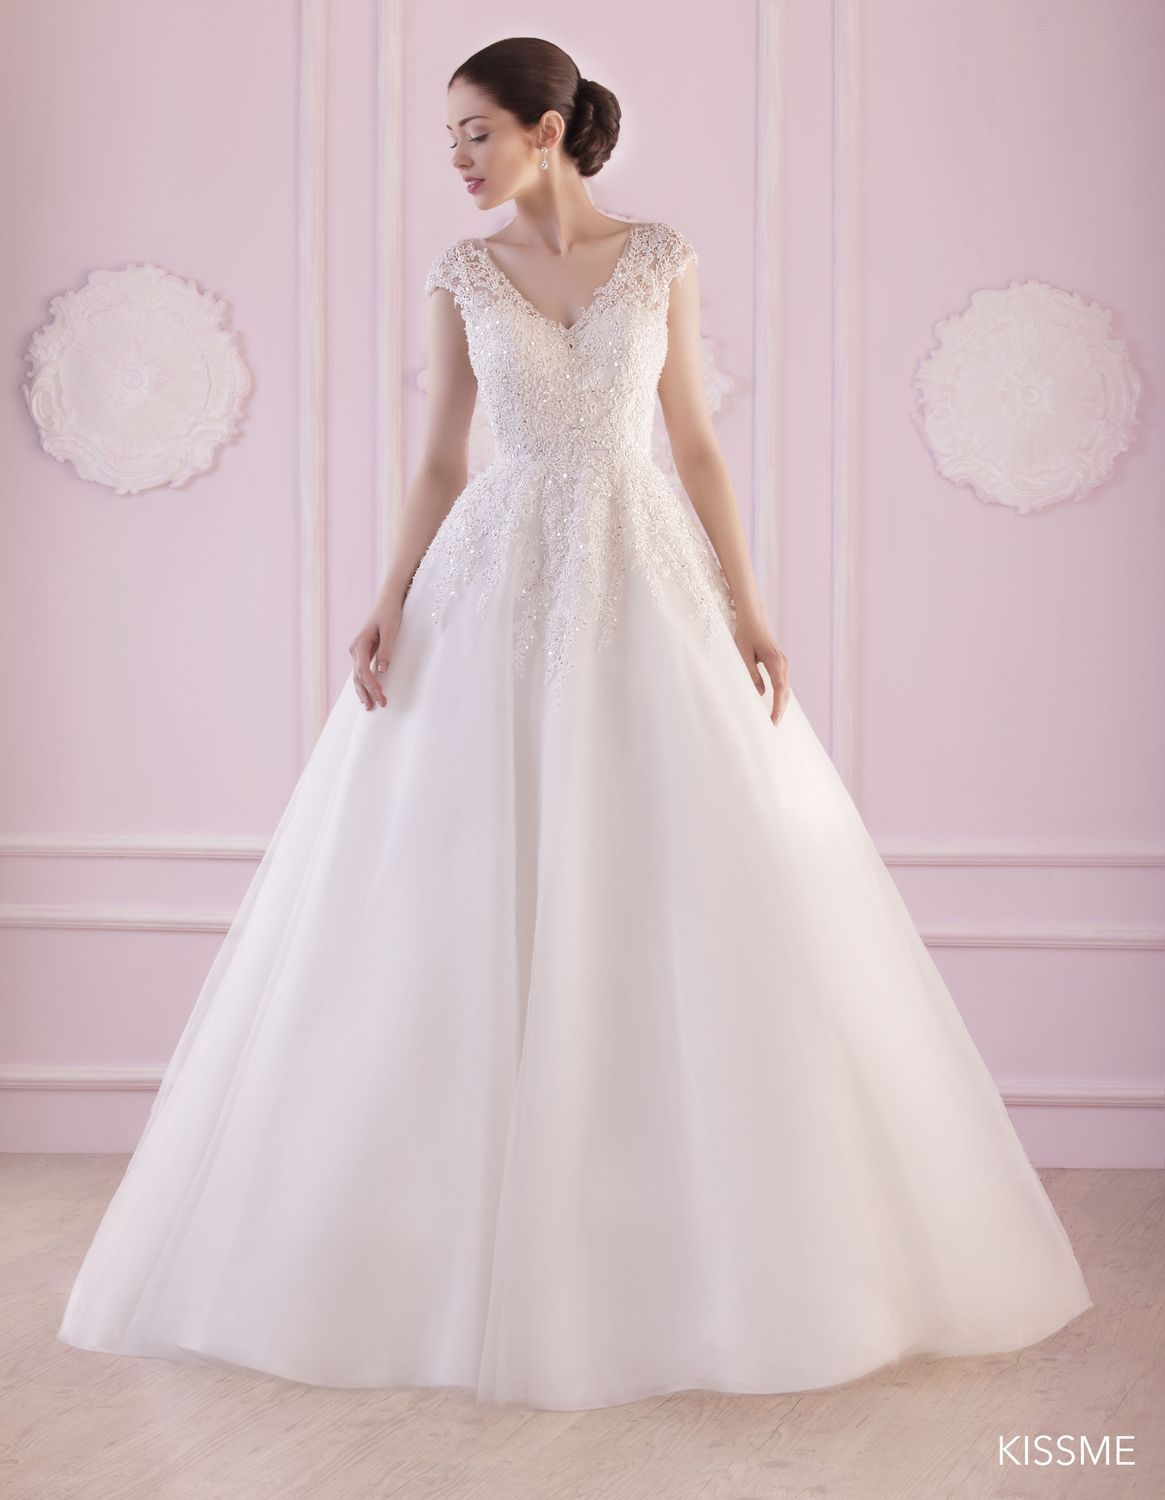 robe de mari eacute e kissme par jarice collection elegance coupe le modegravele kissme de jarice collection elegance 2017 est une robe de marieacutee de coupe princesse